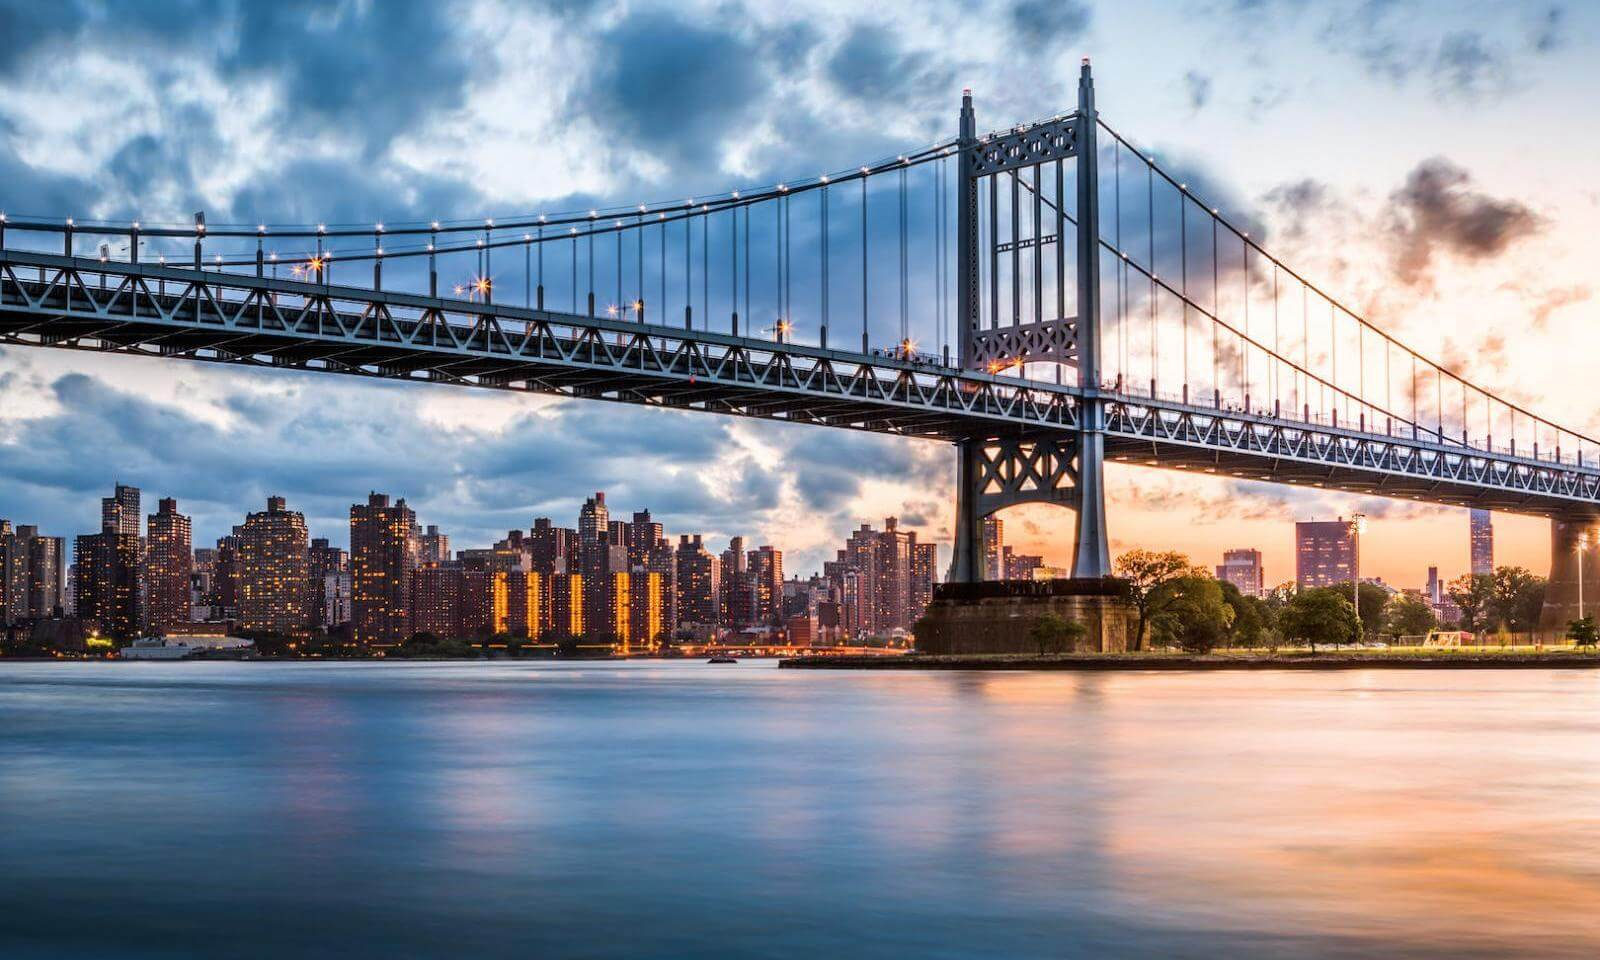 World's largest storage battery will replace gas peaker plants in New York